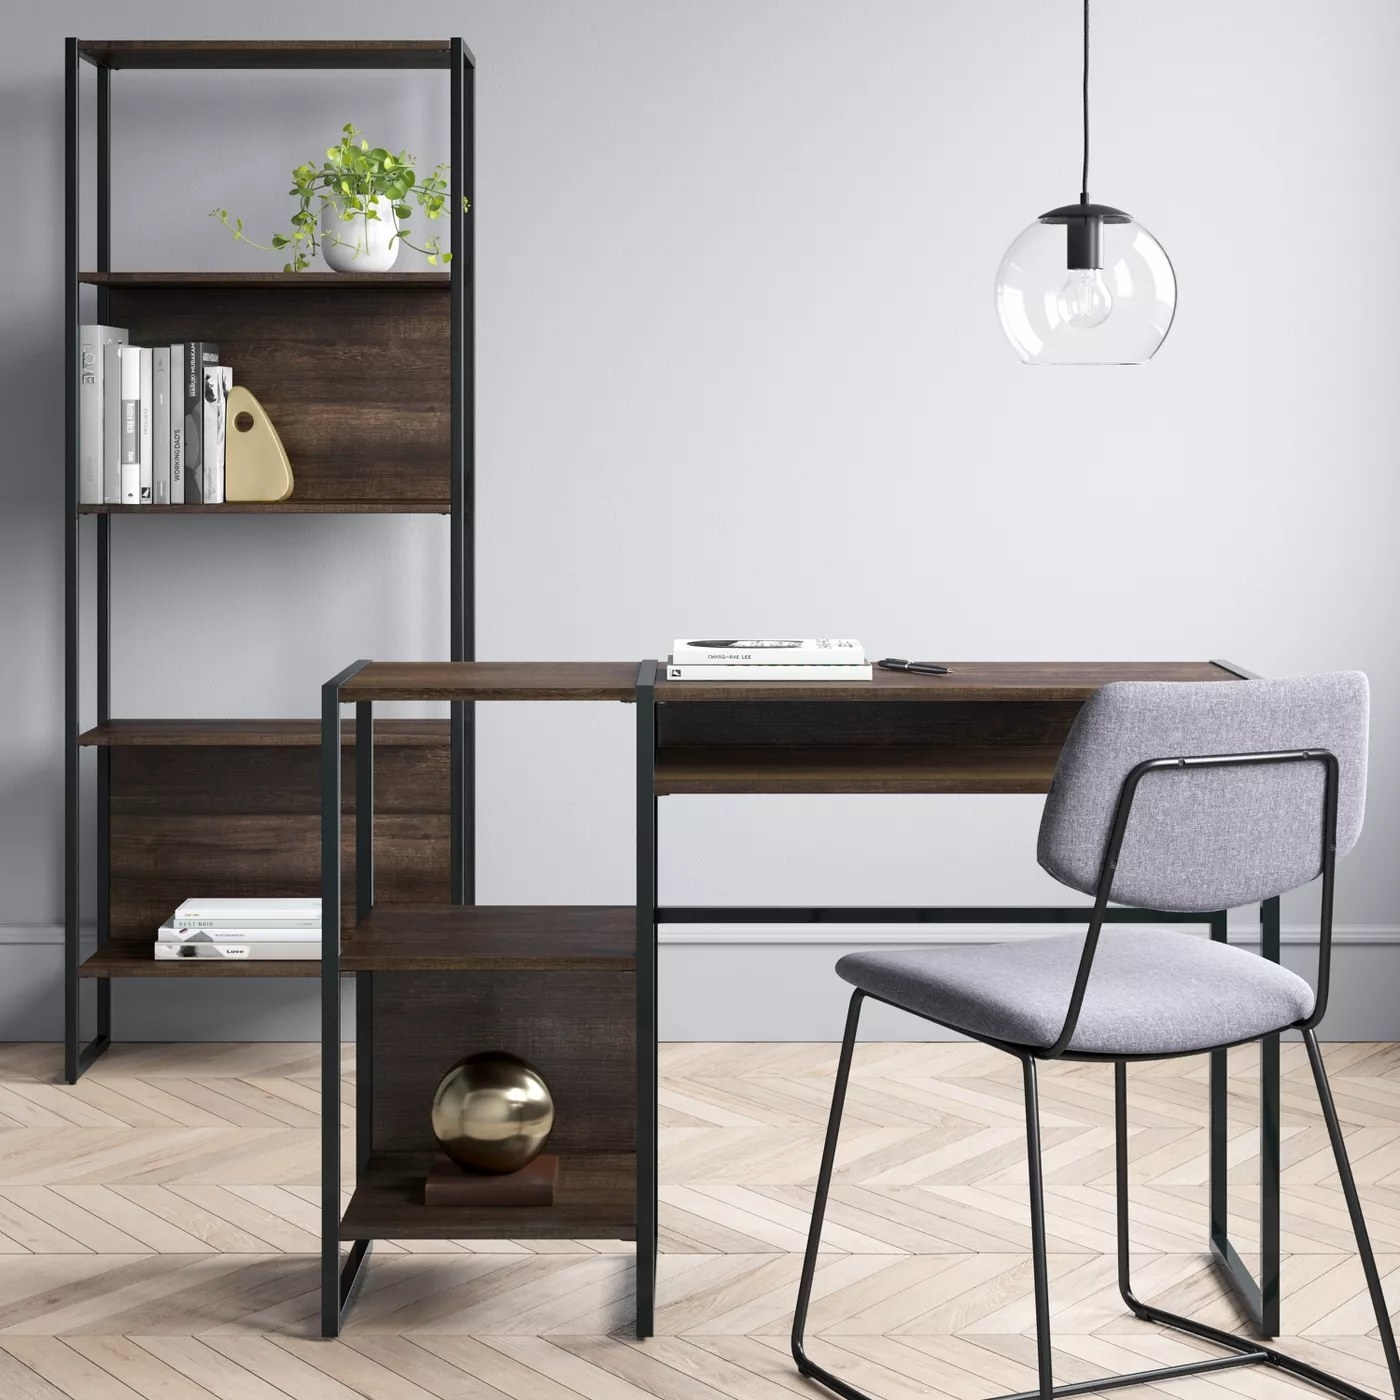 The wooden and black metal modern desk with two side storage spaces